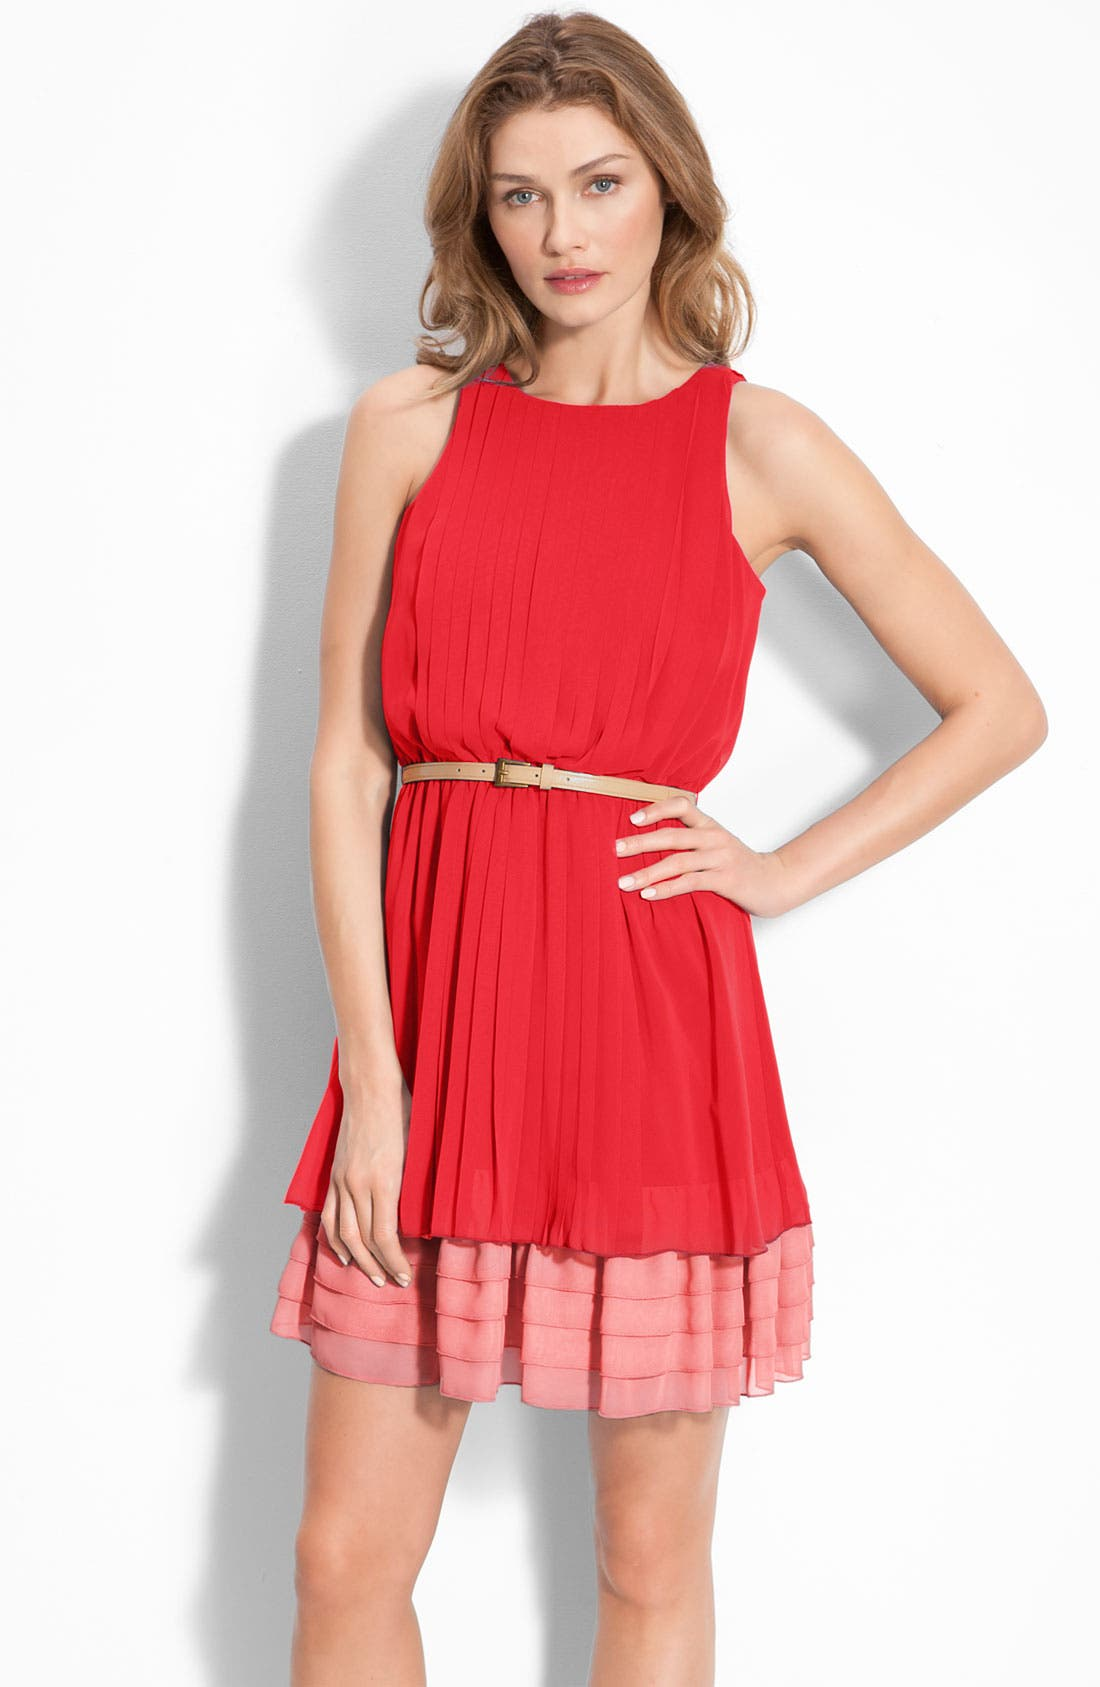 Main Image - Jessica Simpson Sleeveless Chiffon Dress